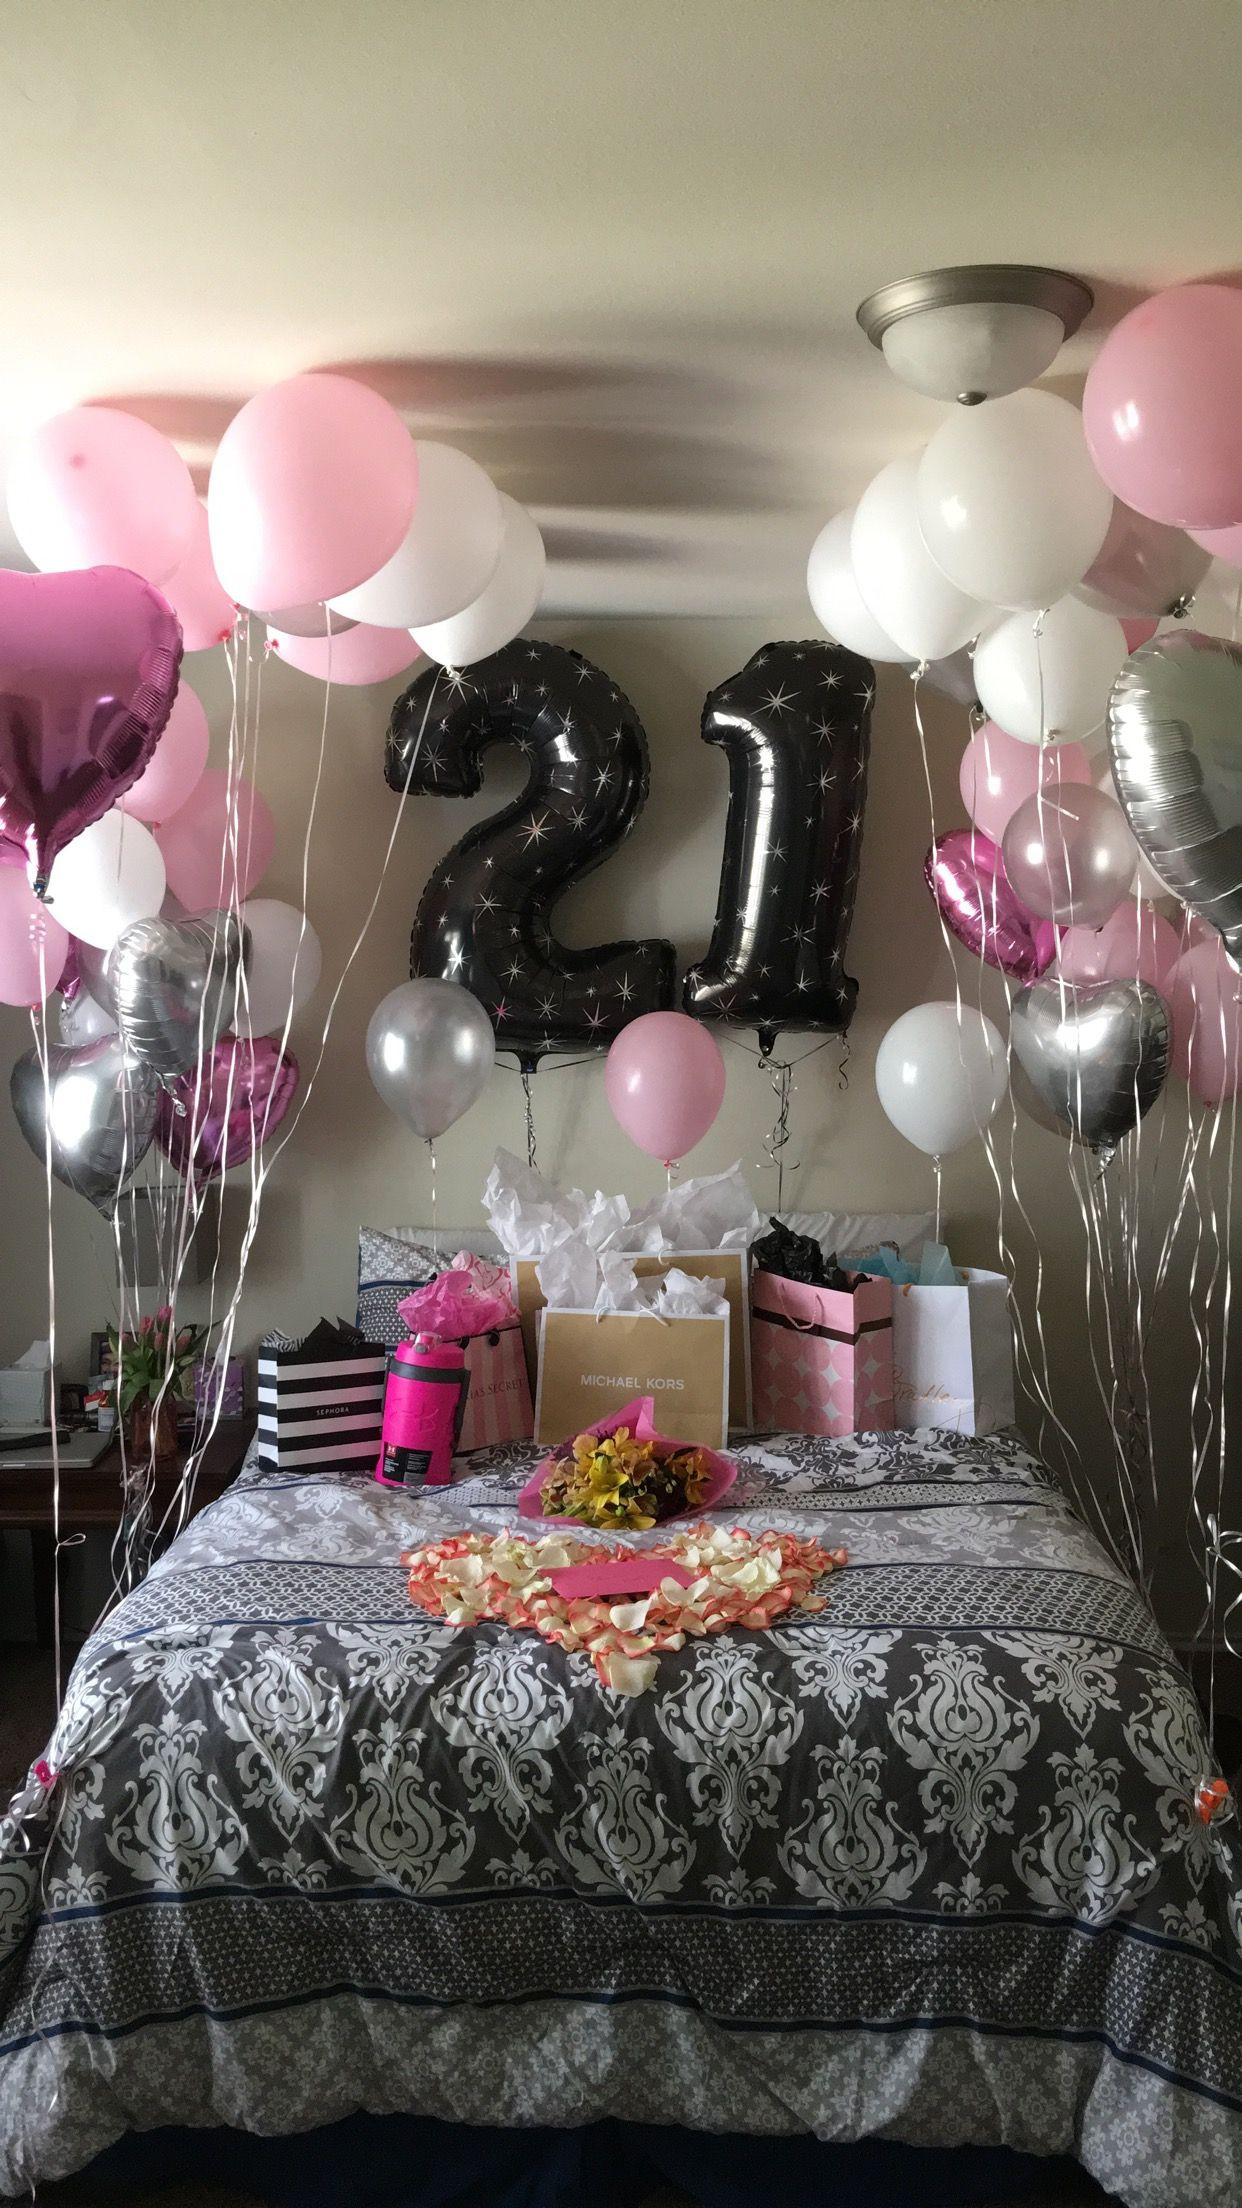 Best ideas about Birthday Gift Ideas For My Girlfriend . Save or Pin 21st Birthday surprise Girlfriends Birthday Now.